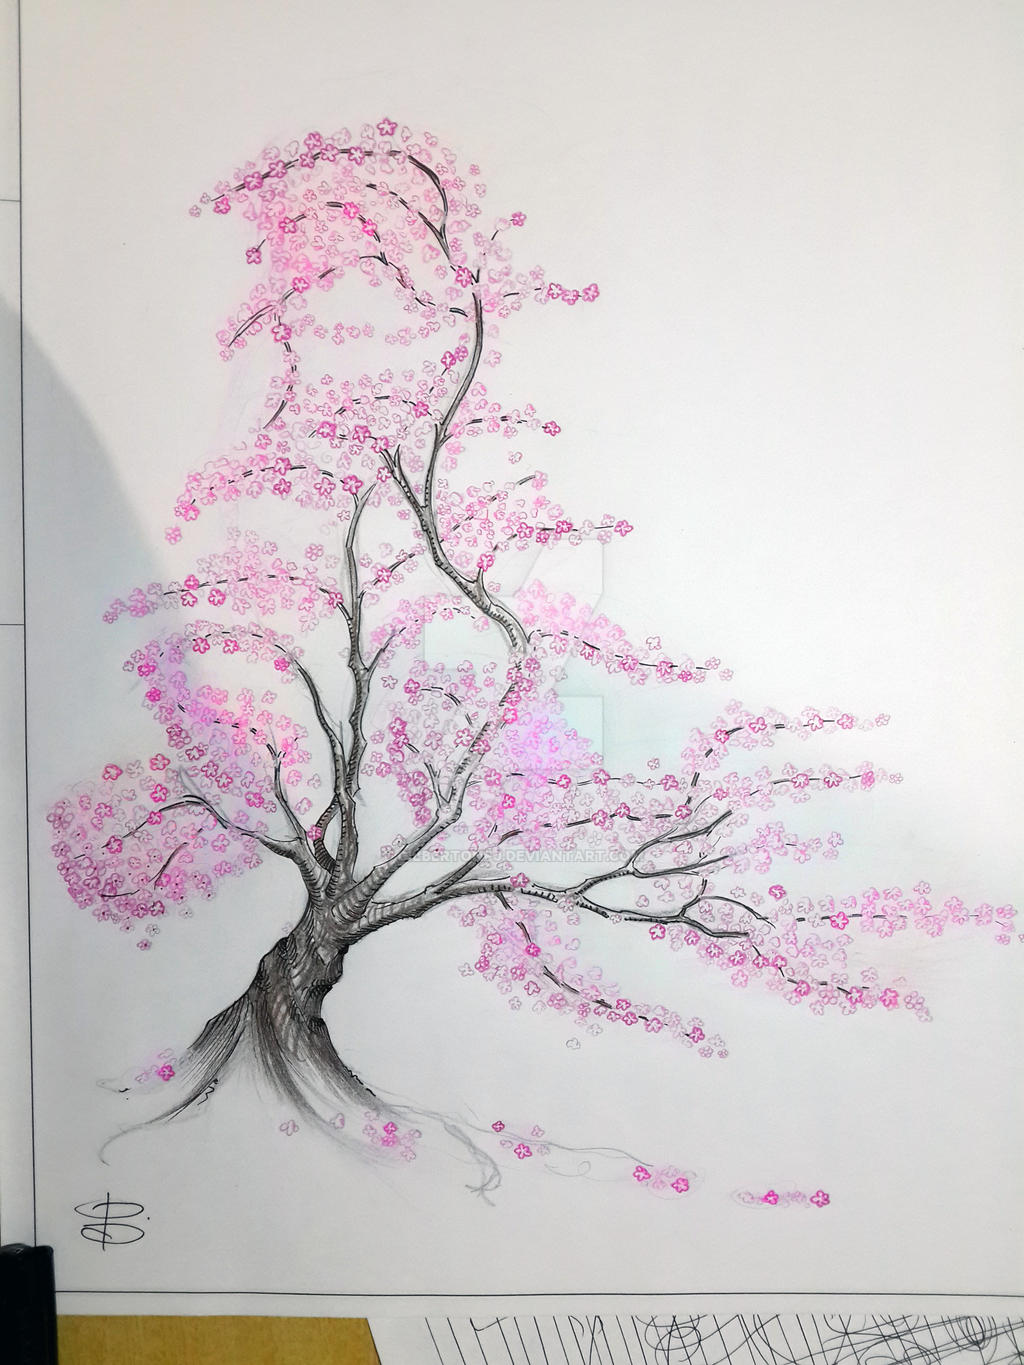 Uncategorized Cherry Blossom Tree Sketch cherry blossom tree by gilbertonfj on deviantart gilbertonfj